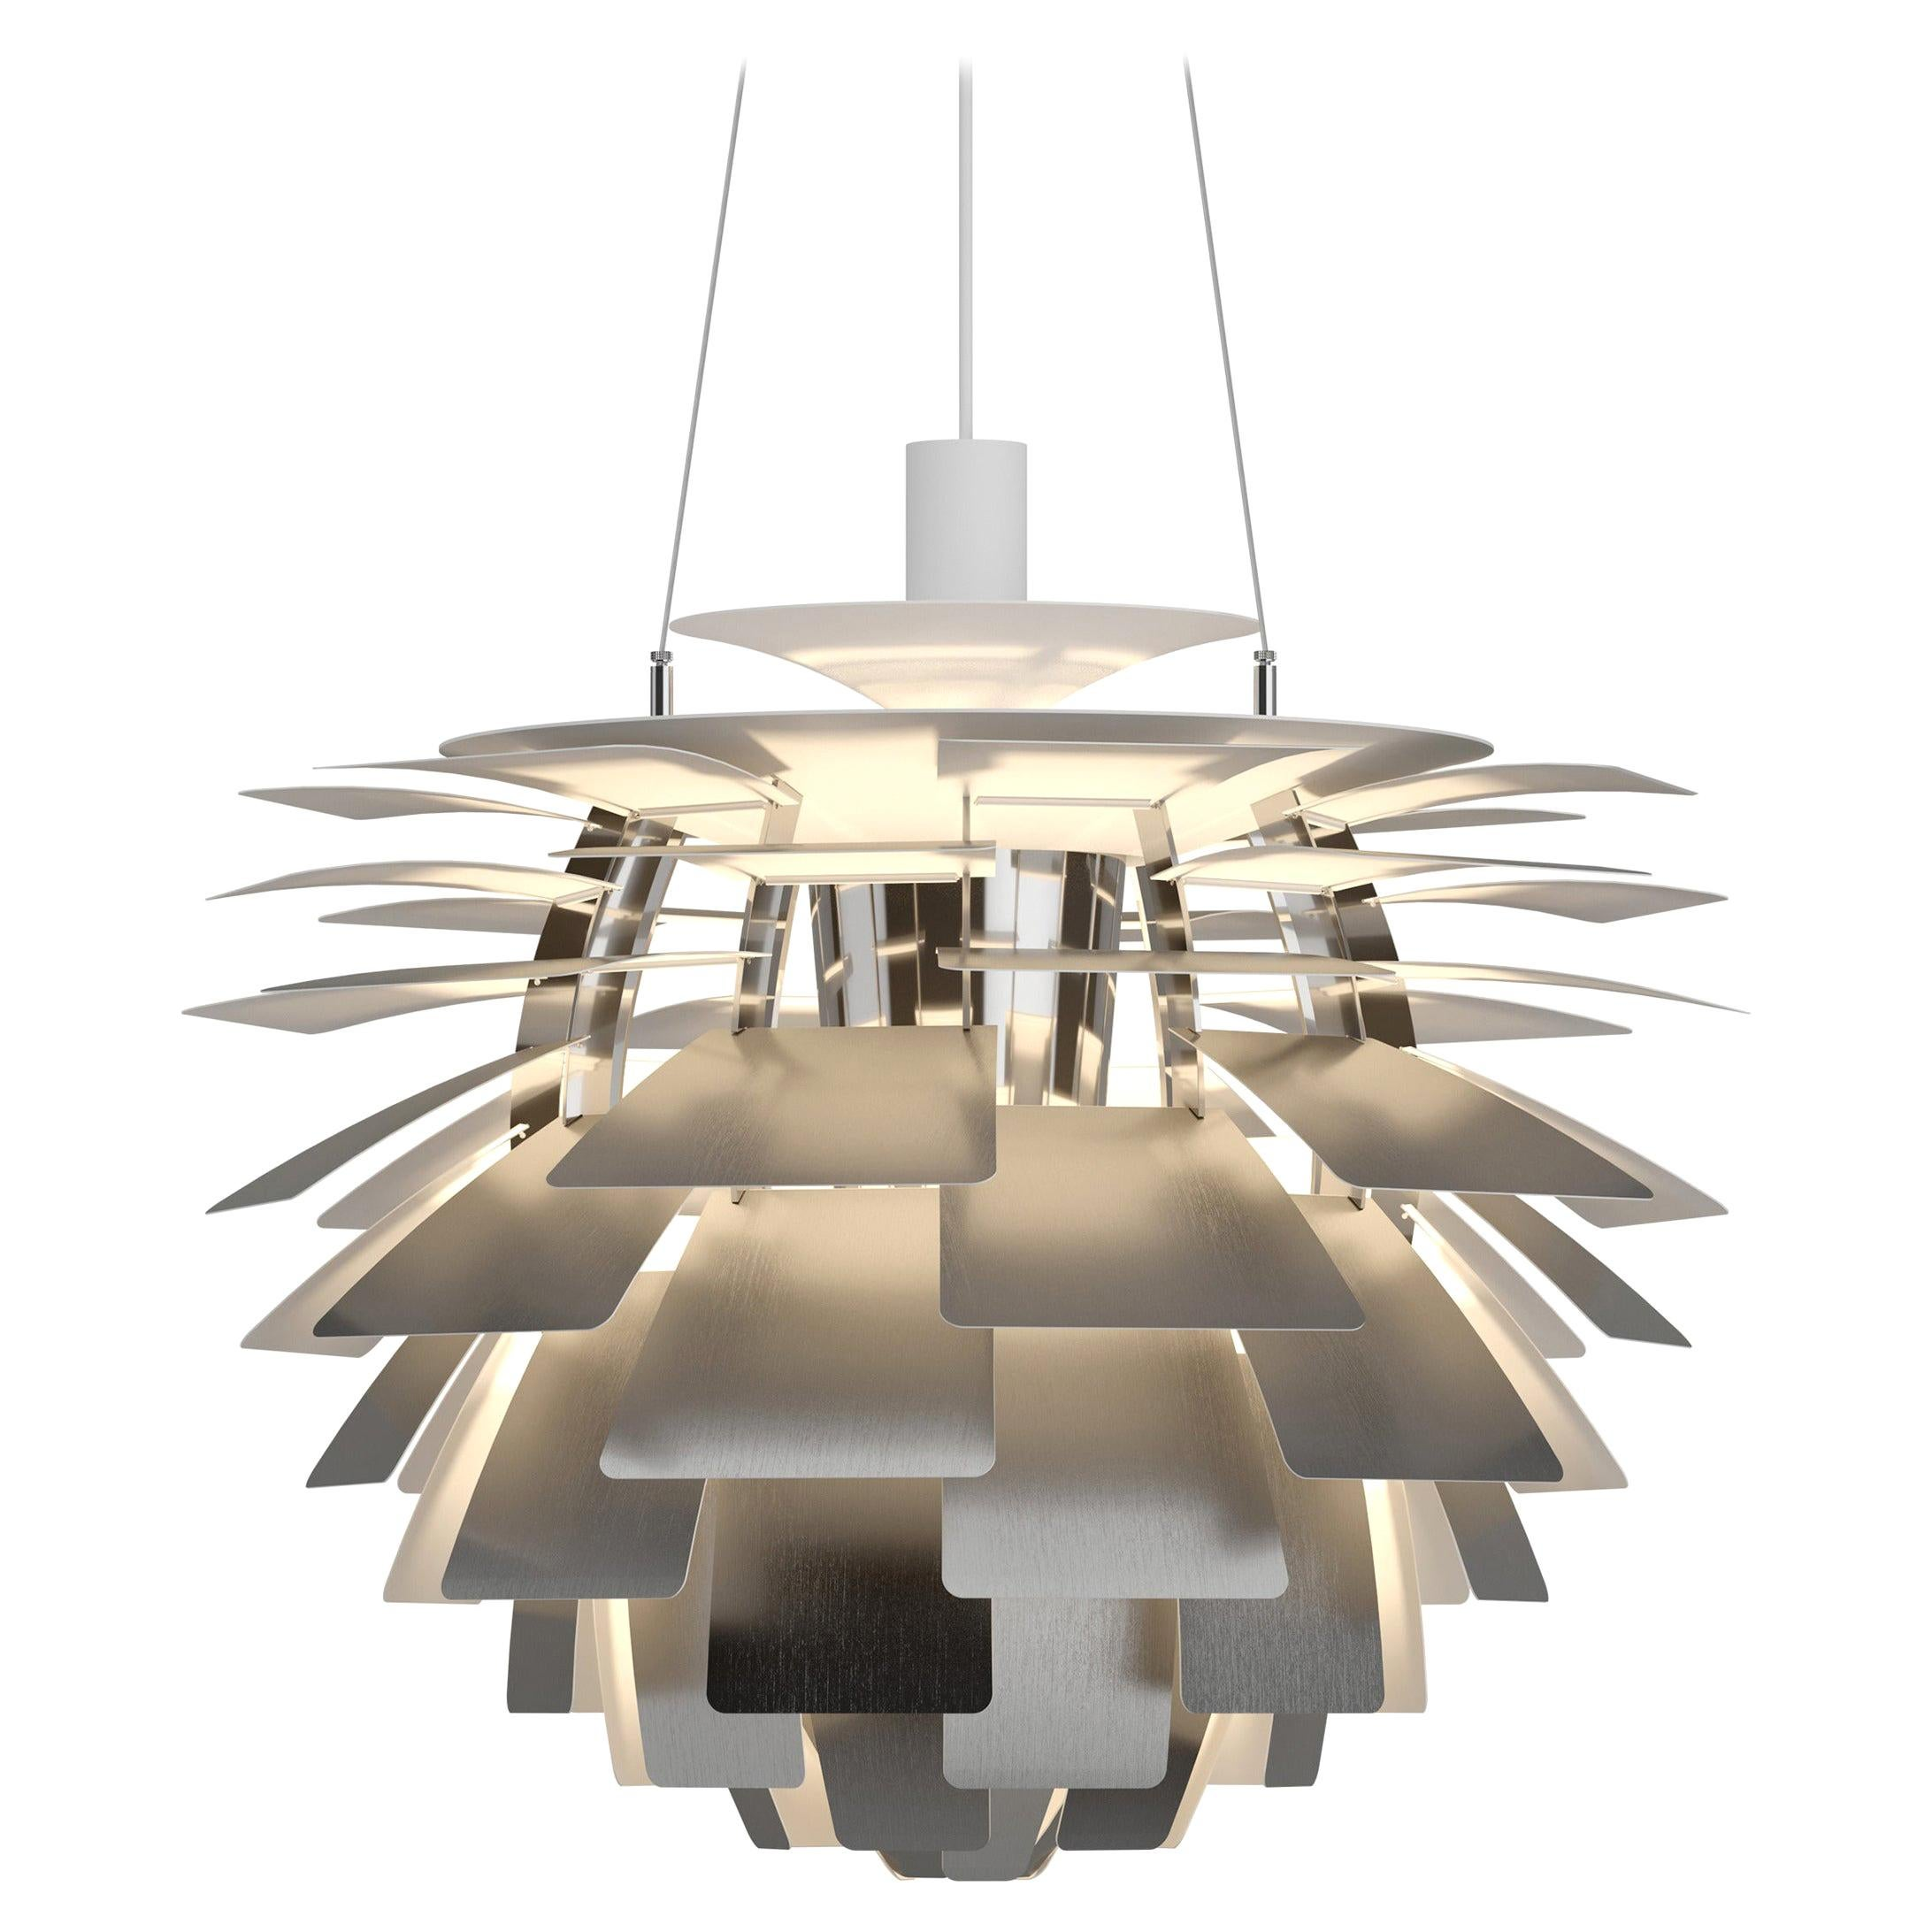 Louis Poulsen Large PH Artichoke Pendant Light by Poul Henningsen